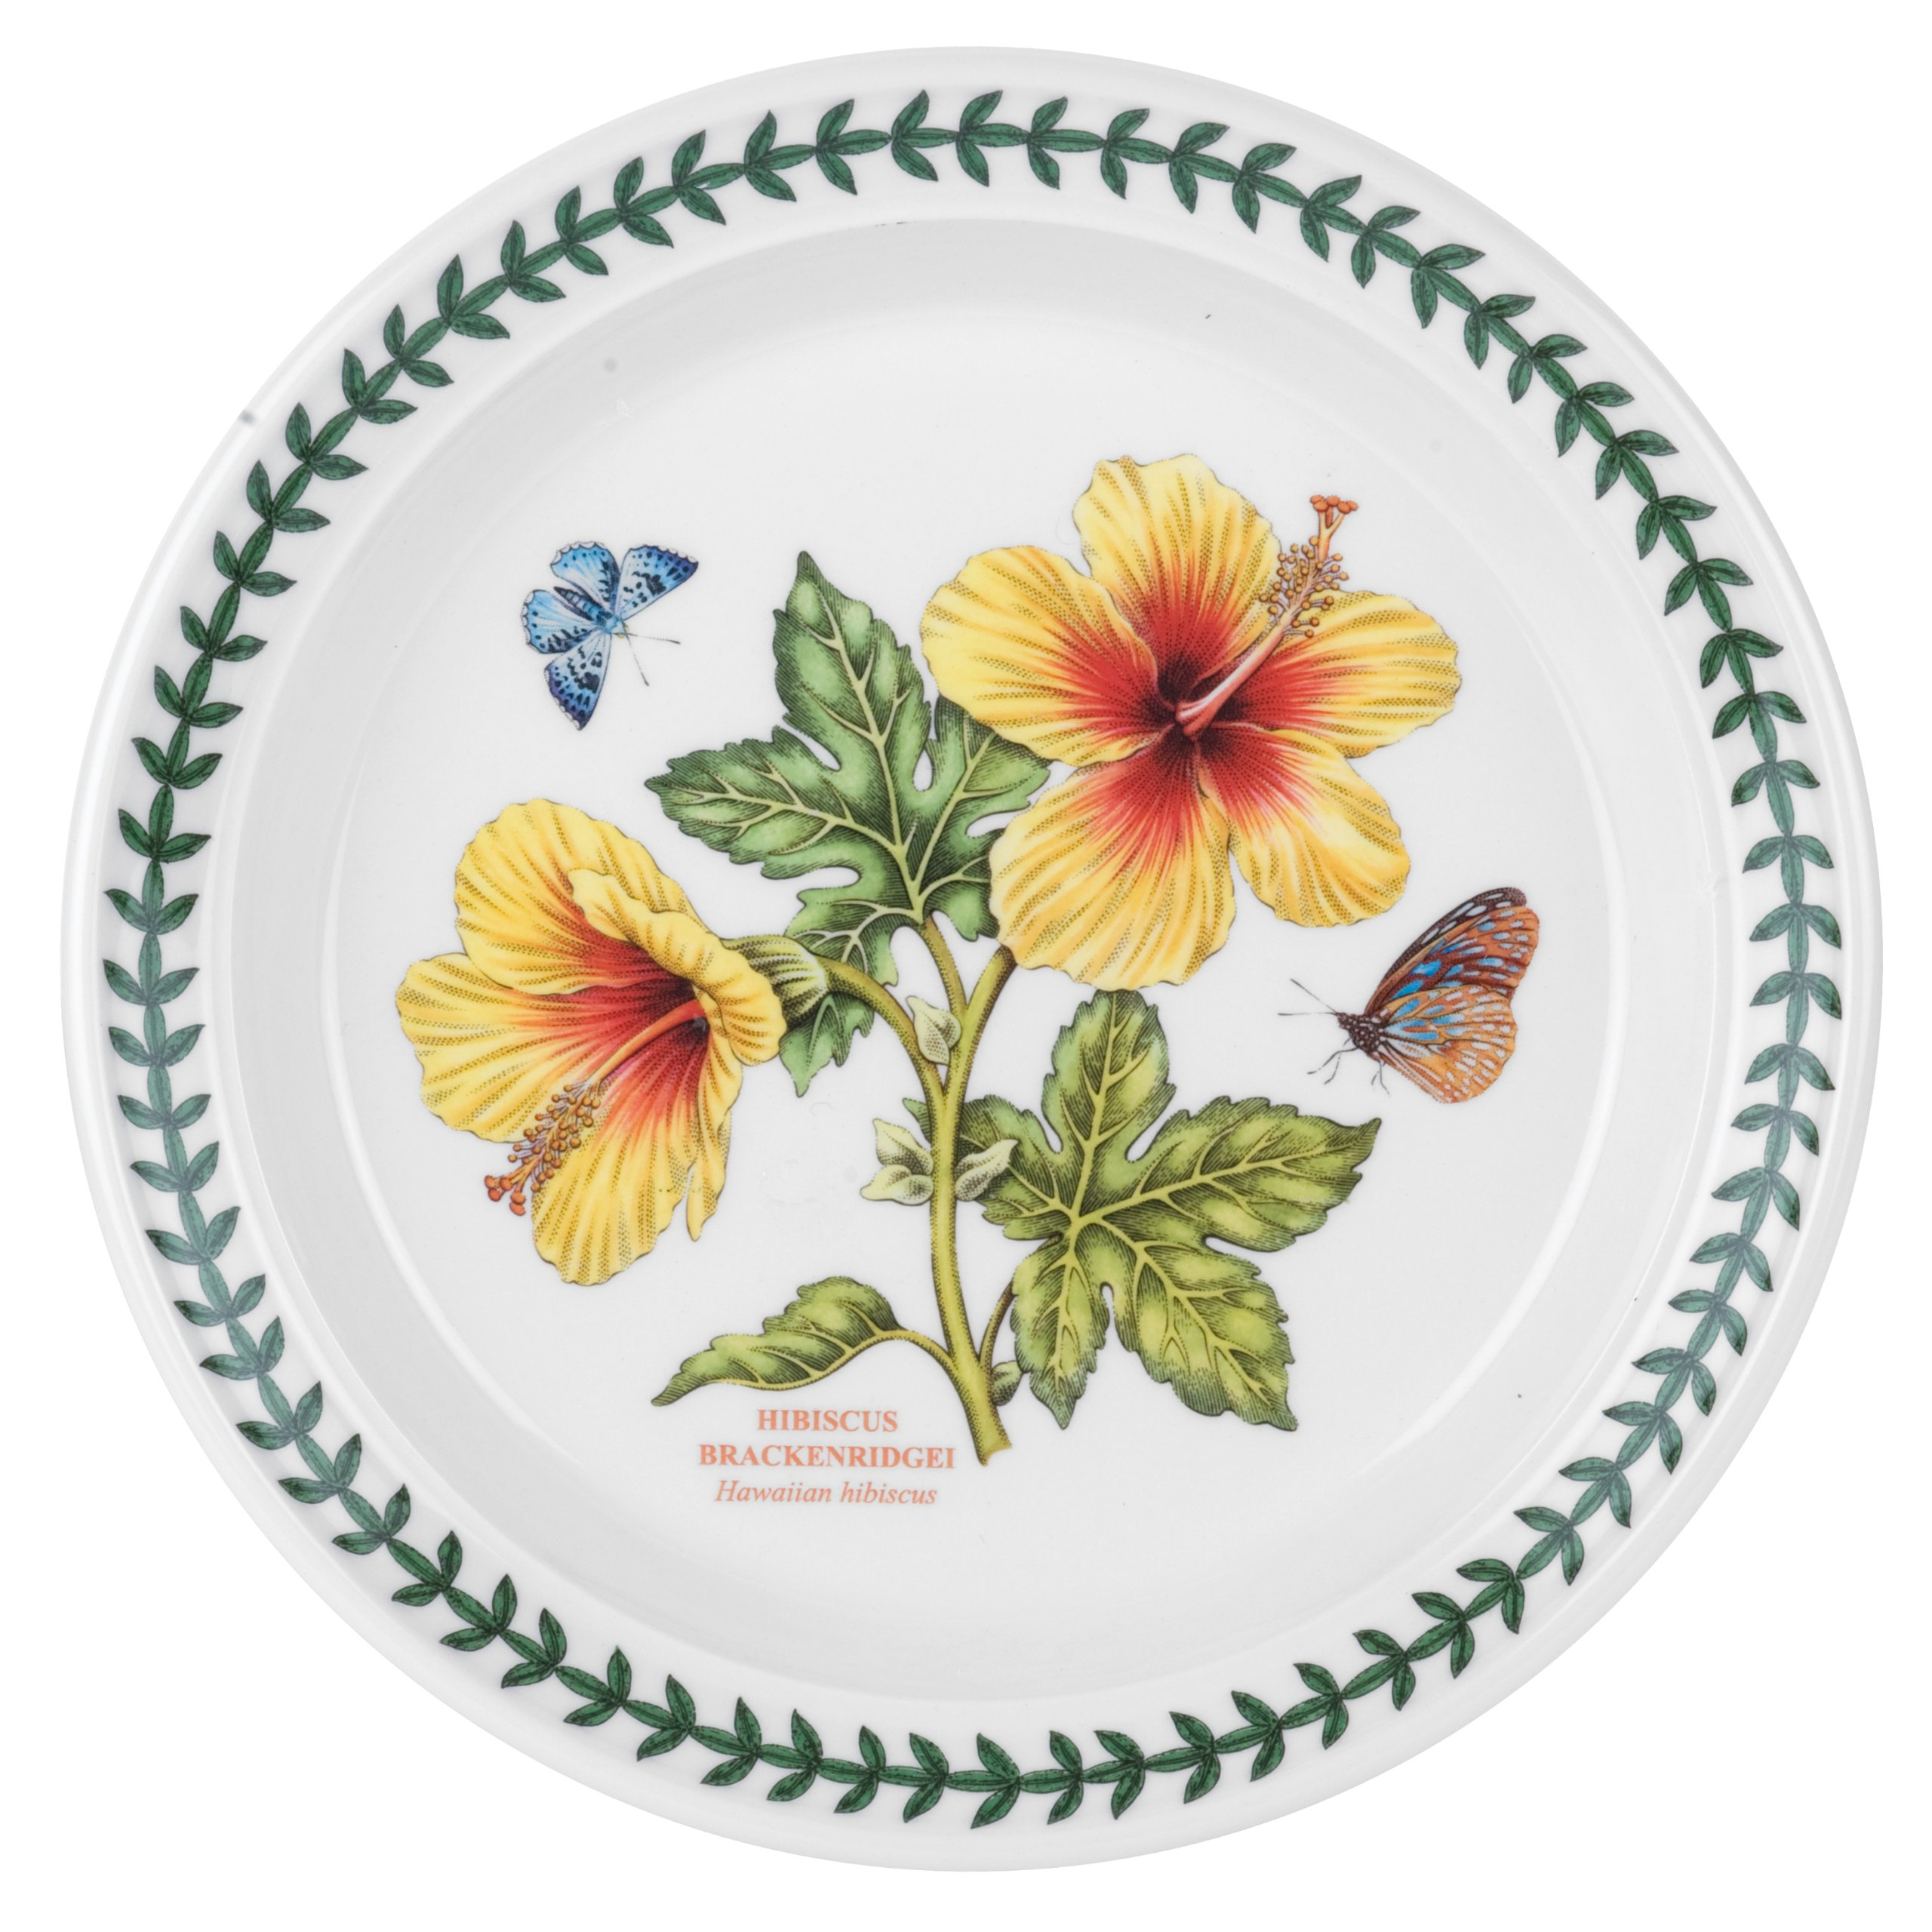 Portmeirion Exotic Botanic Garden Salad Plate with Hibiscus Motif, Set of 6